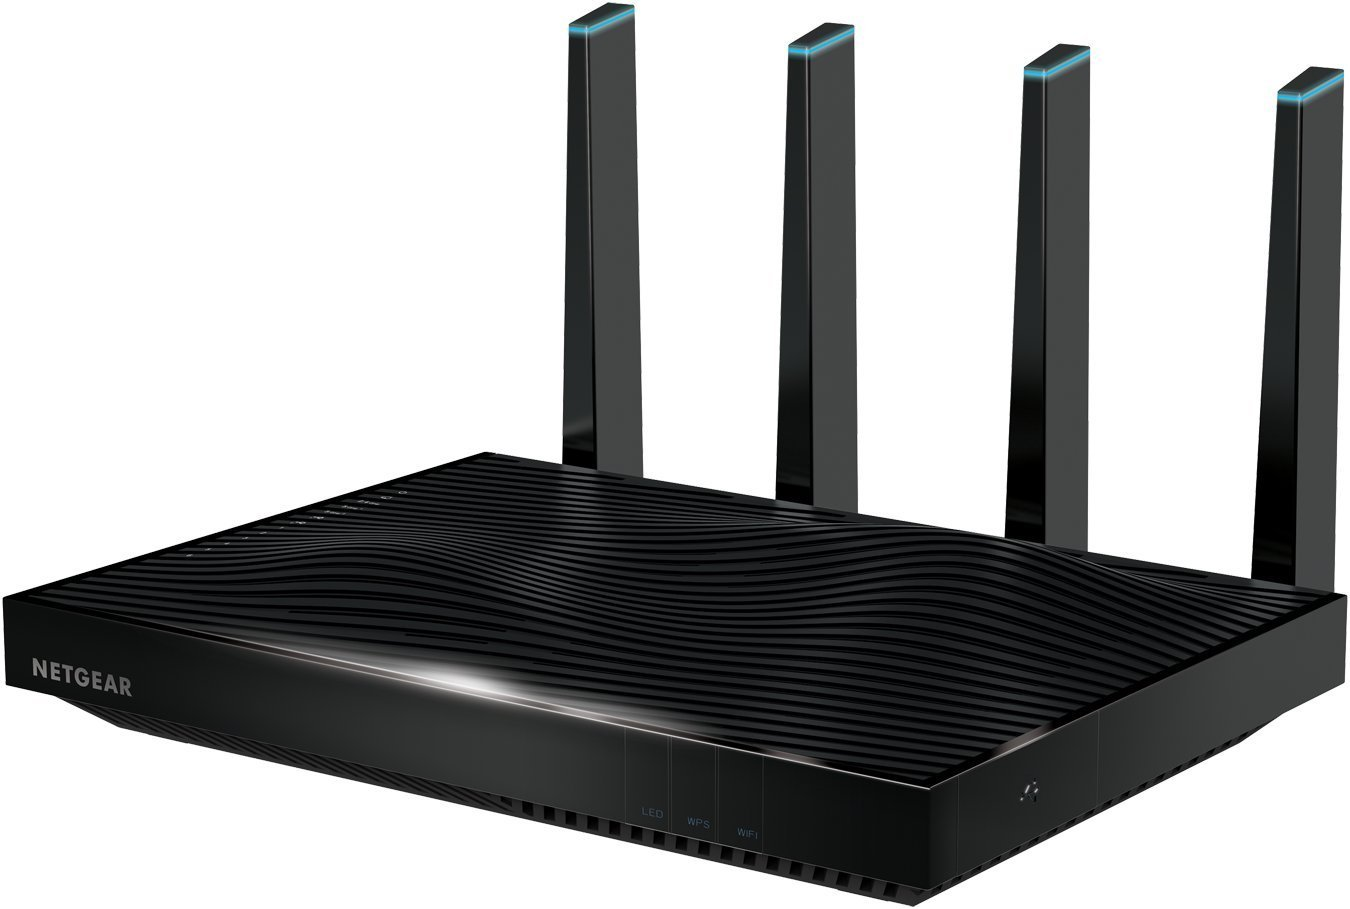 NETGEAR AC5300 Nighthawk X8 Tri-Band WiFi Router by NETGEAR